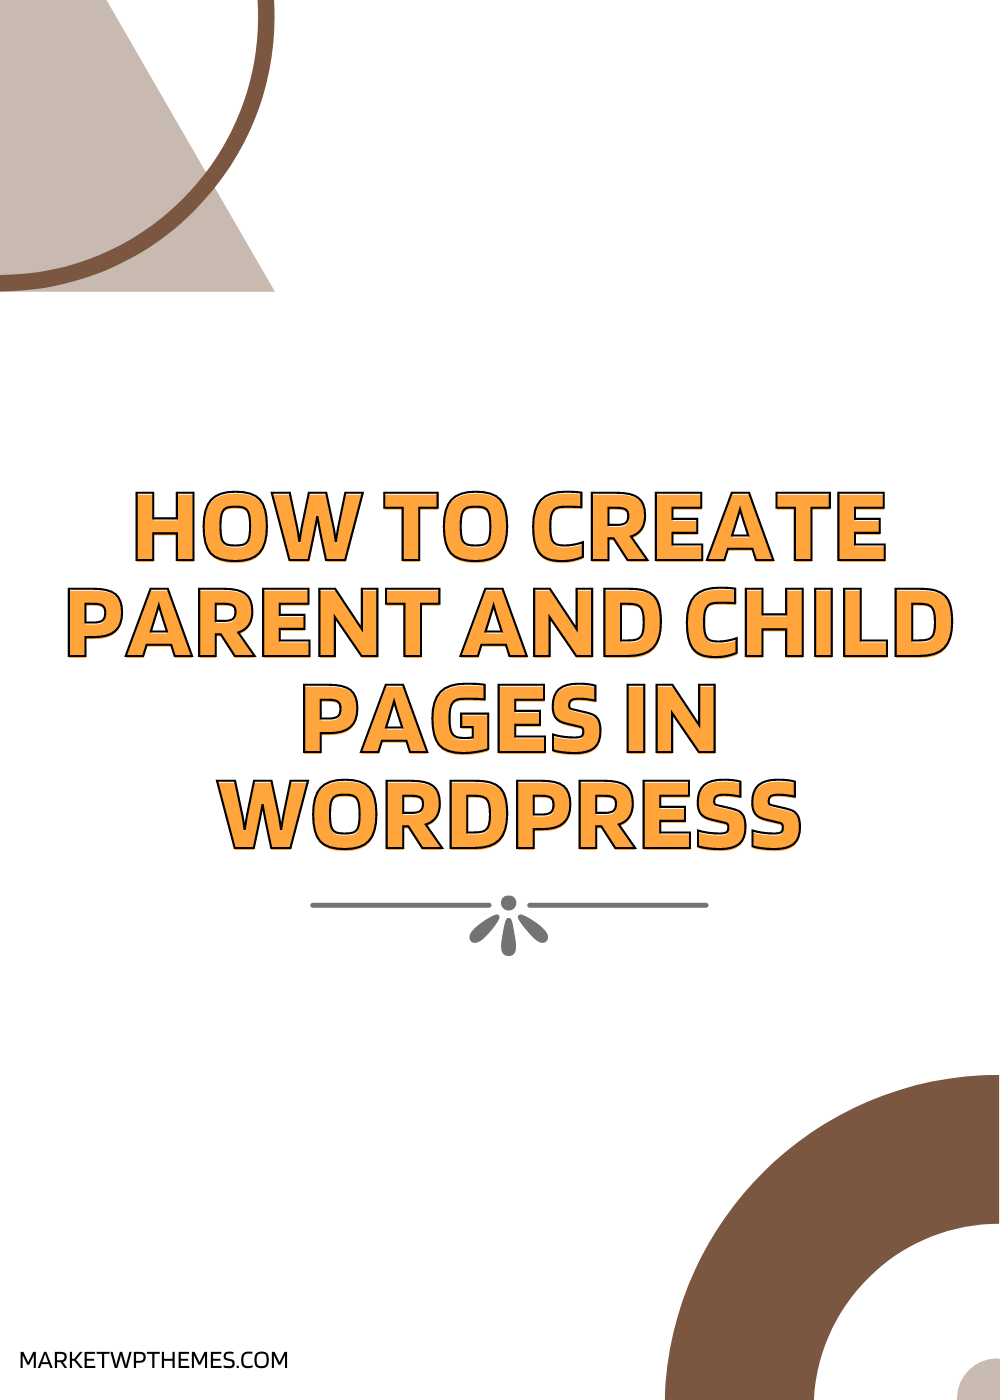 How to Add a Redirect for Random Posts in WordPress